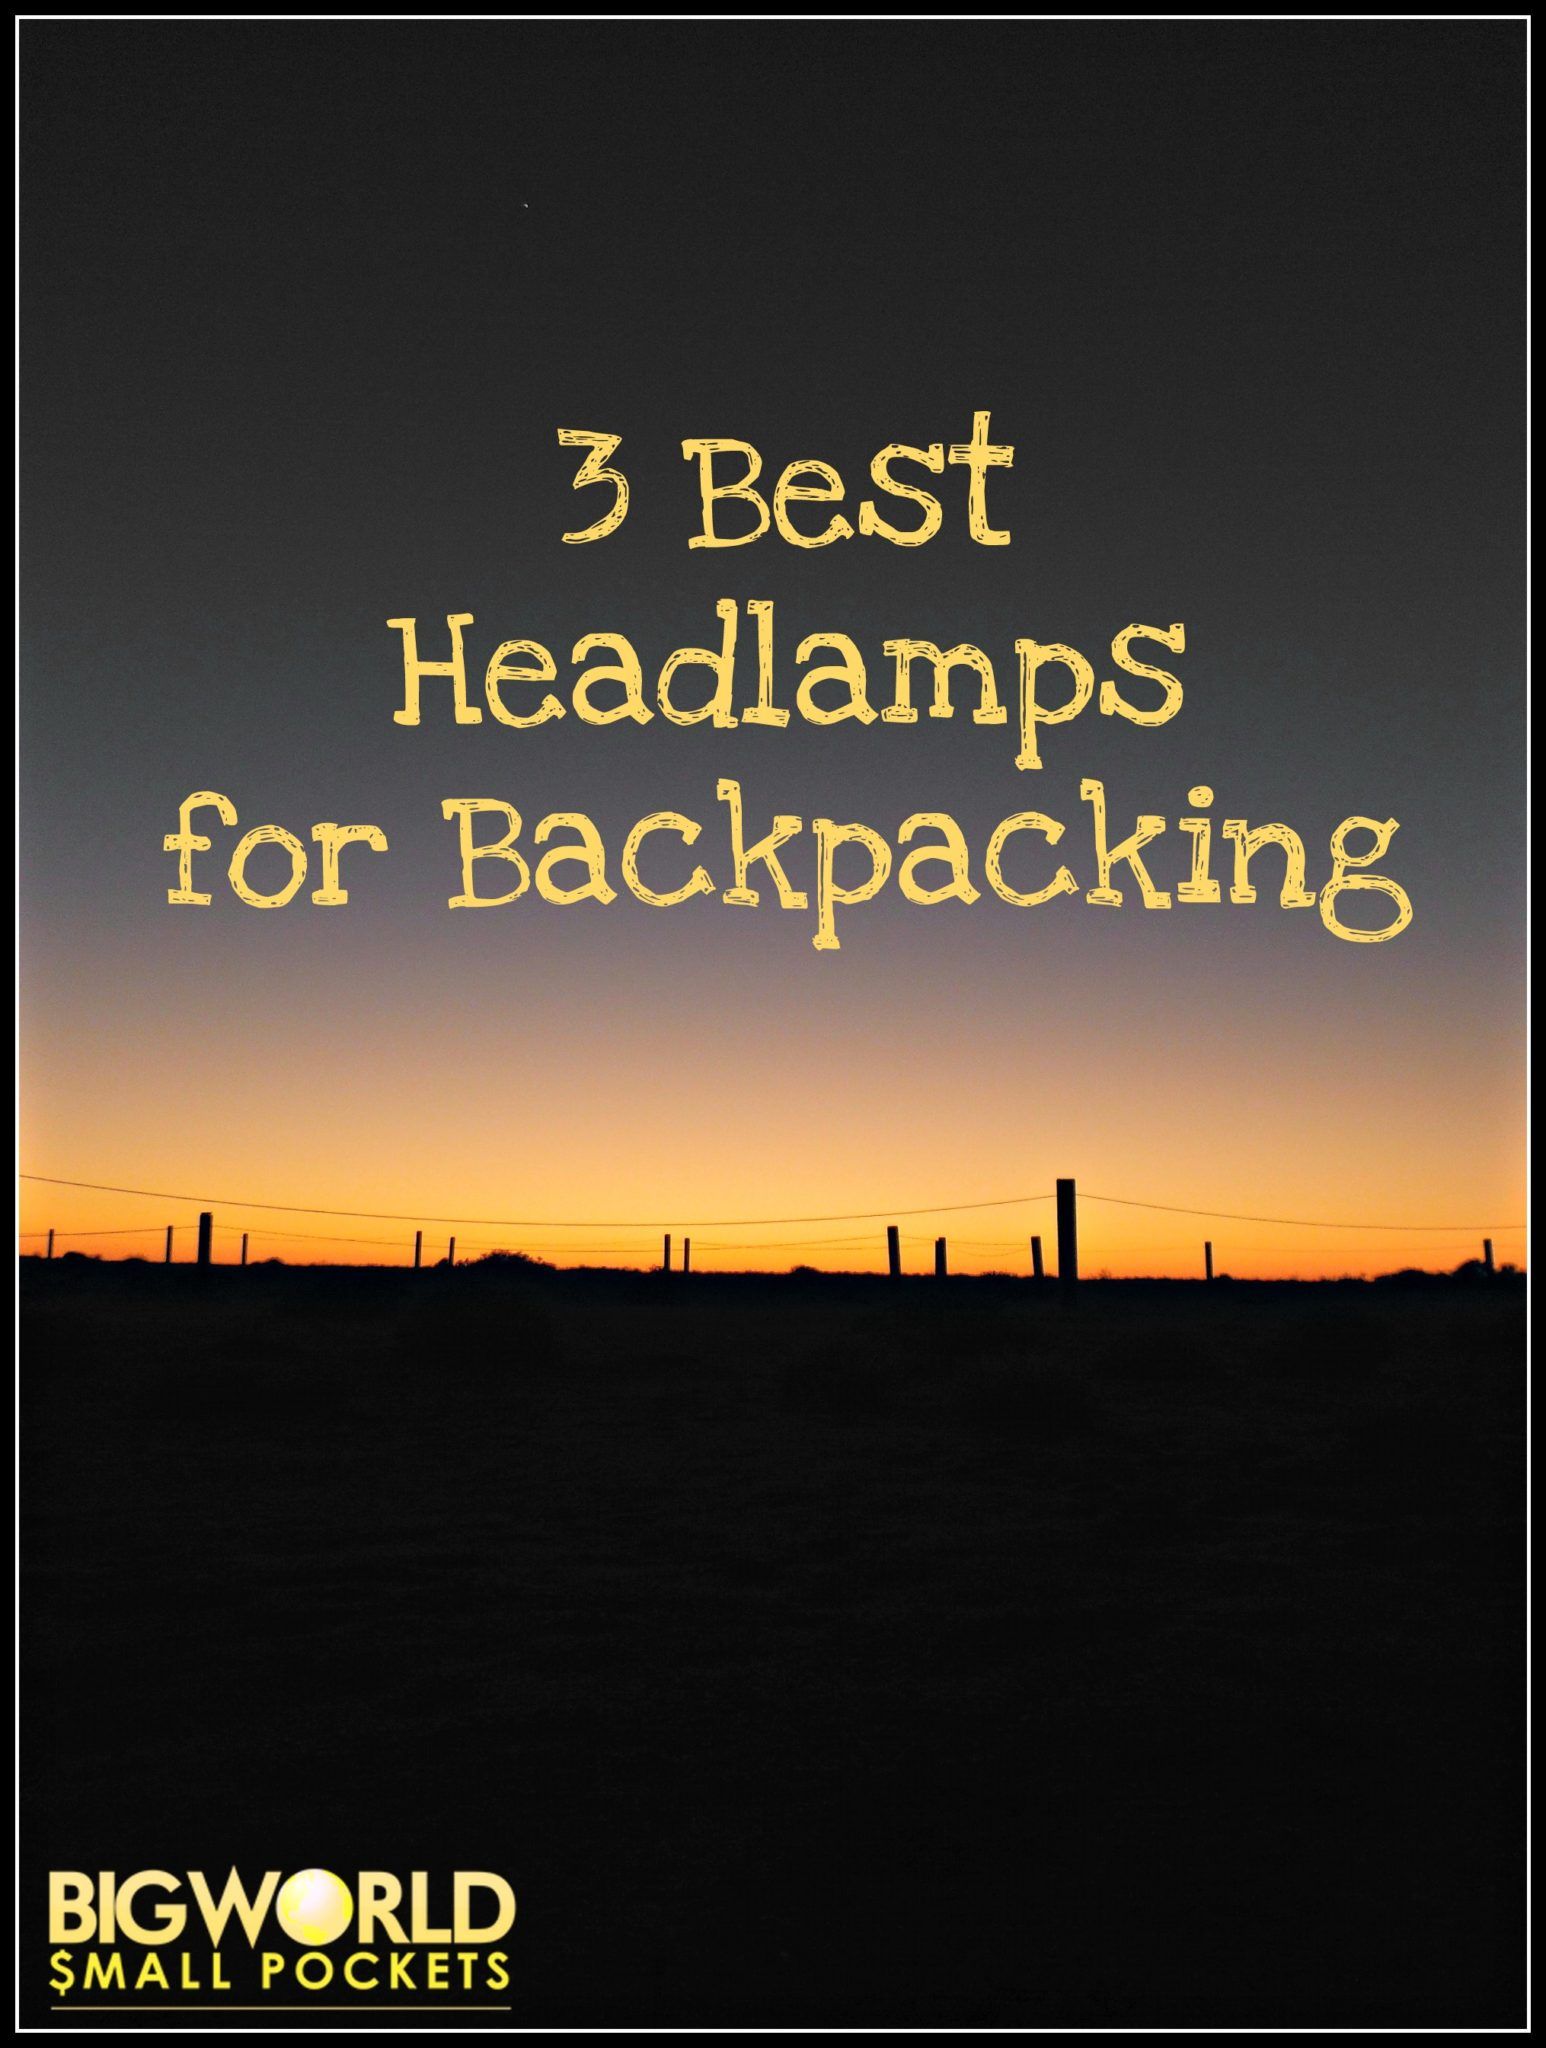 Check out my list of the 3 Best Headlamps for Backpacking and make sure you never leave home in the dark again! {Big World Small Pockets}